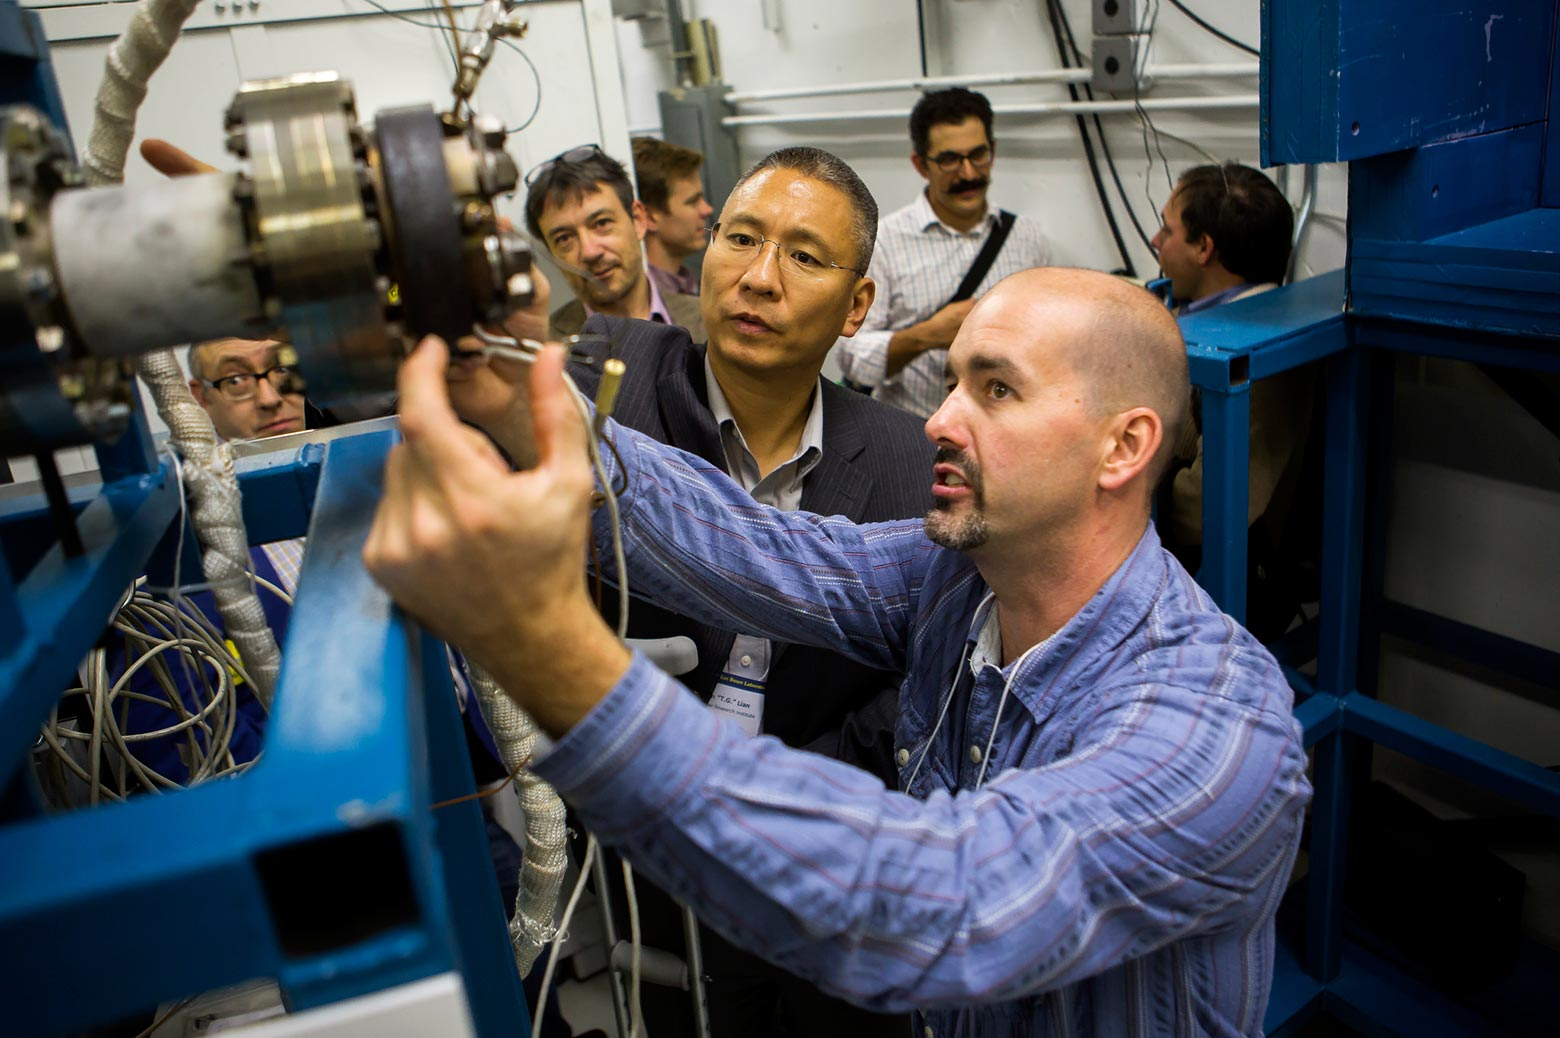 Tour of the Ion Beam Lab